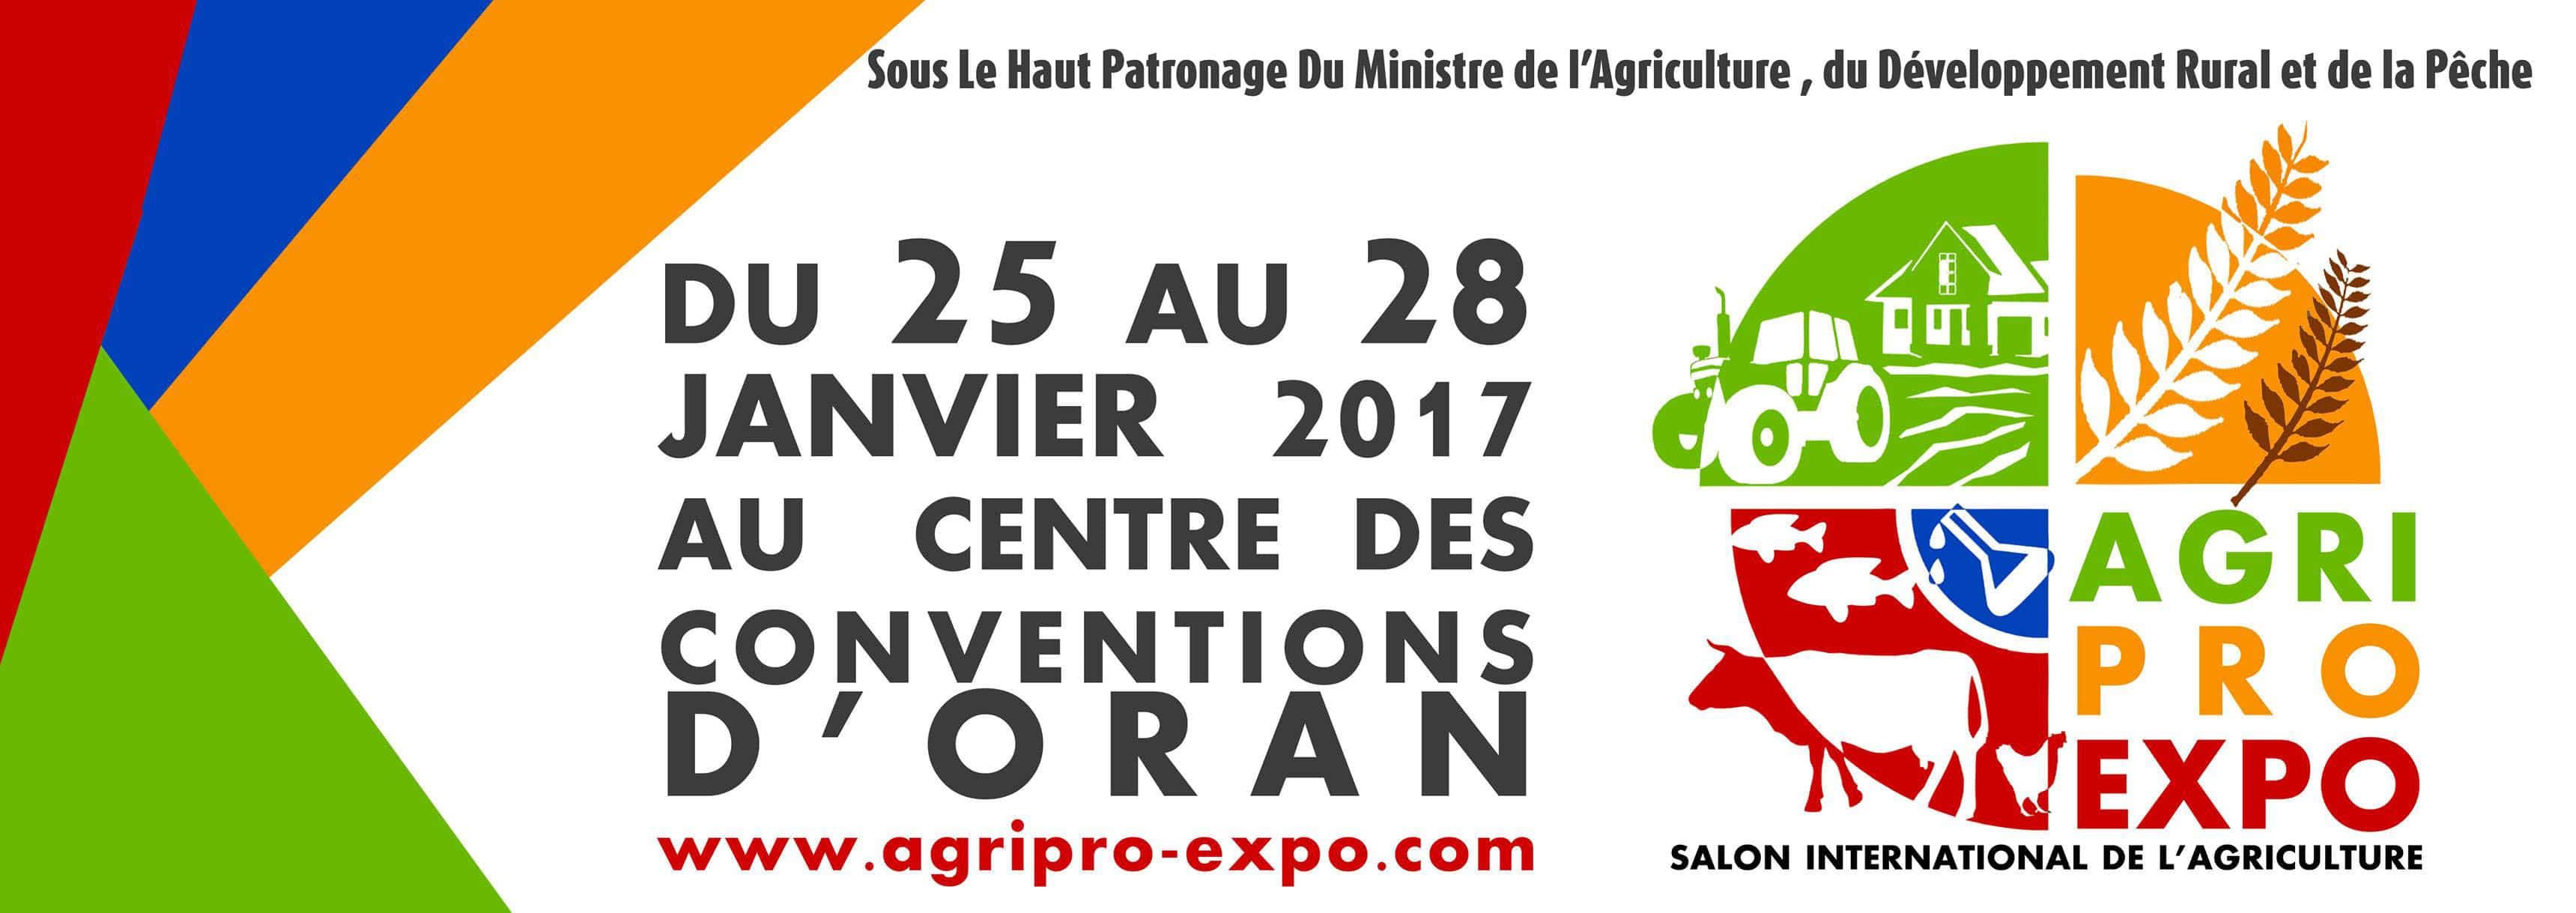 Salon international de l agriculture d oran centre de conventions d 39 oran - Salon de l agriculture place ...